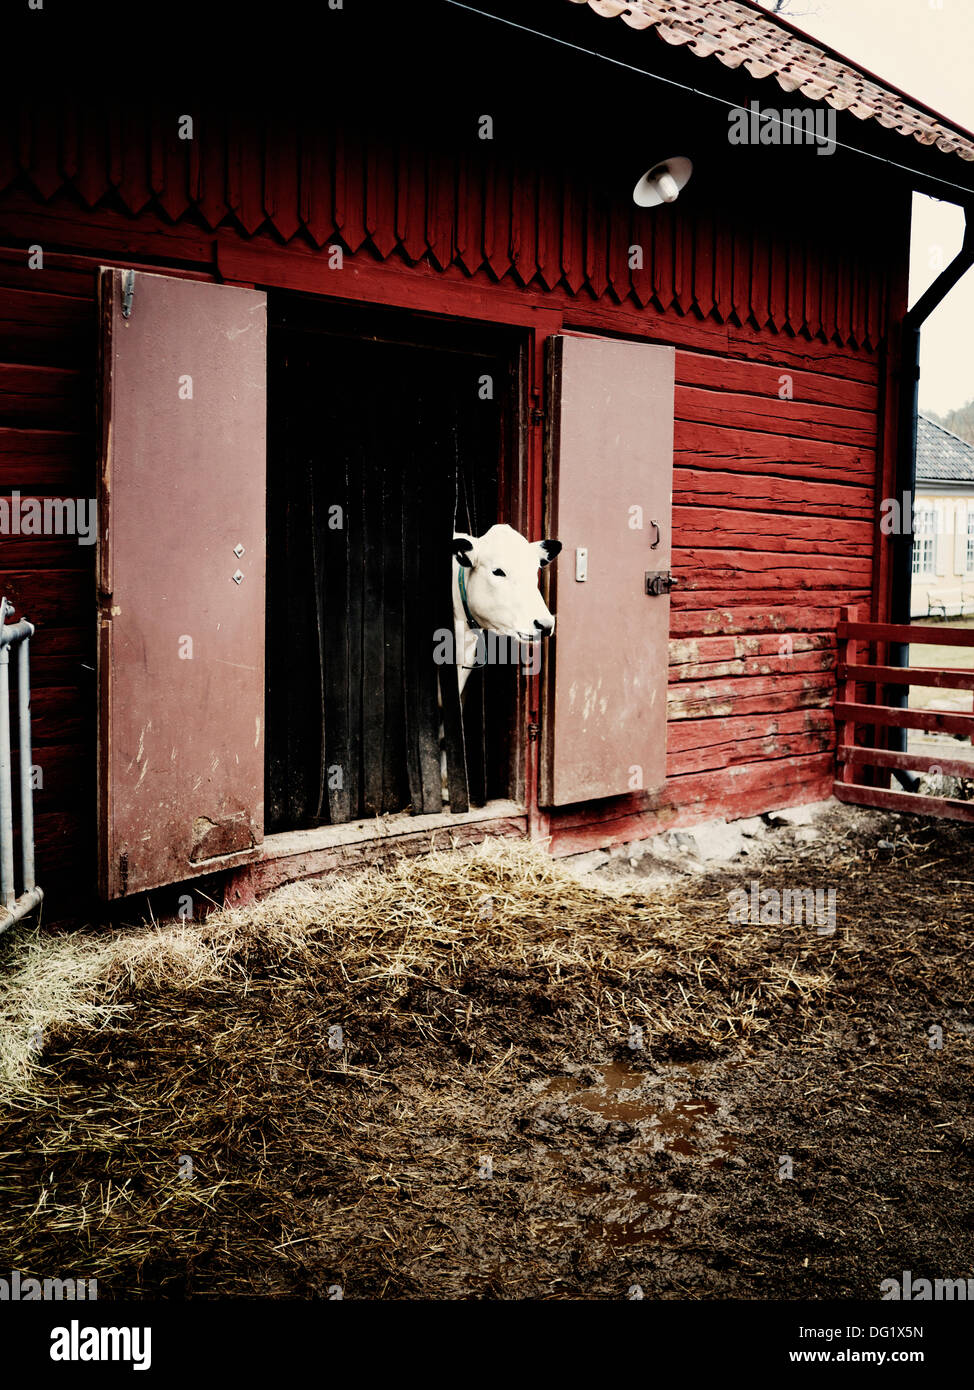 Cow poking head out of barn door stock image